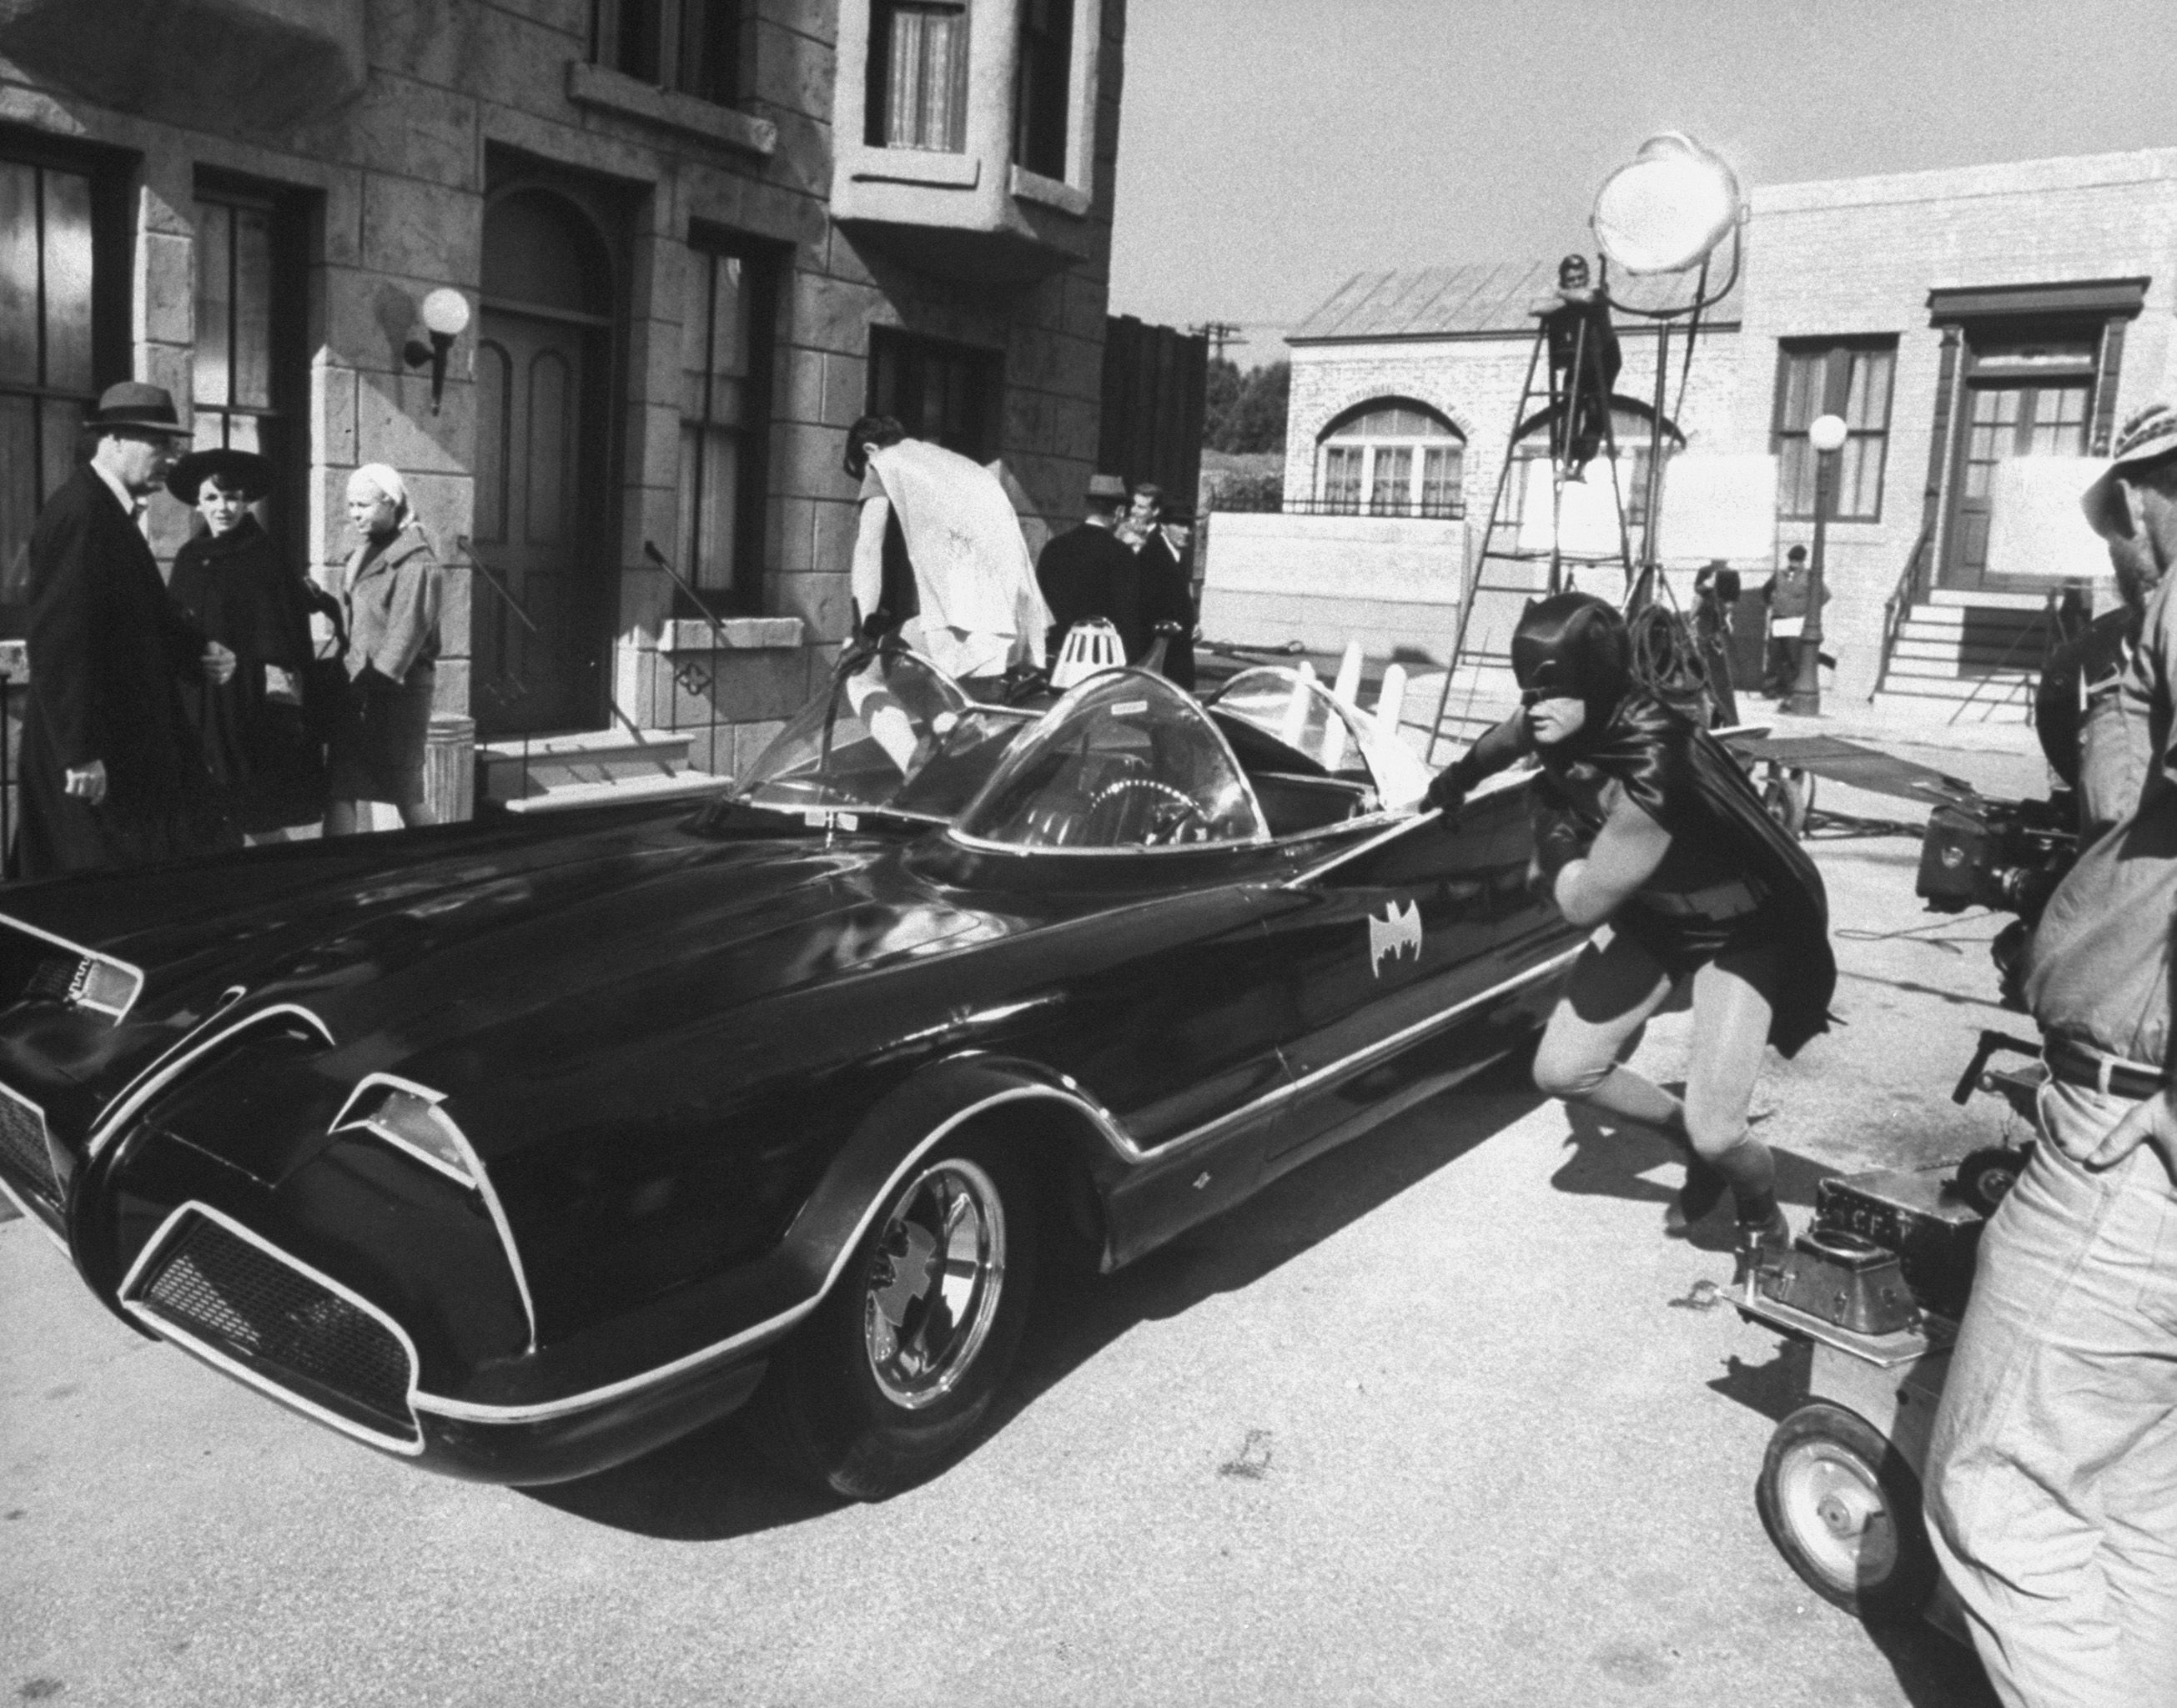 45 Behind-the-Scenes Photos From the Set of Batman Films and TV Shows